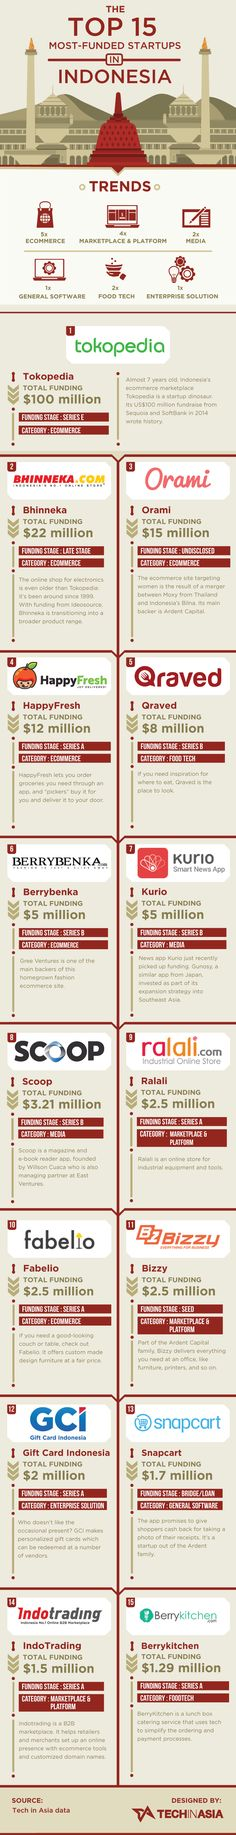 Indonesia's 15 best-funded startups (INFOGRAPHIC)